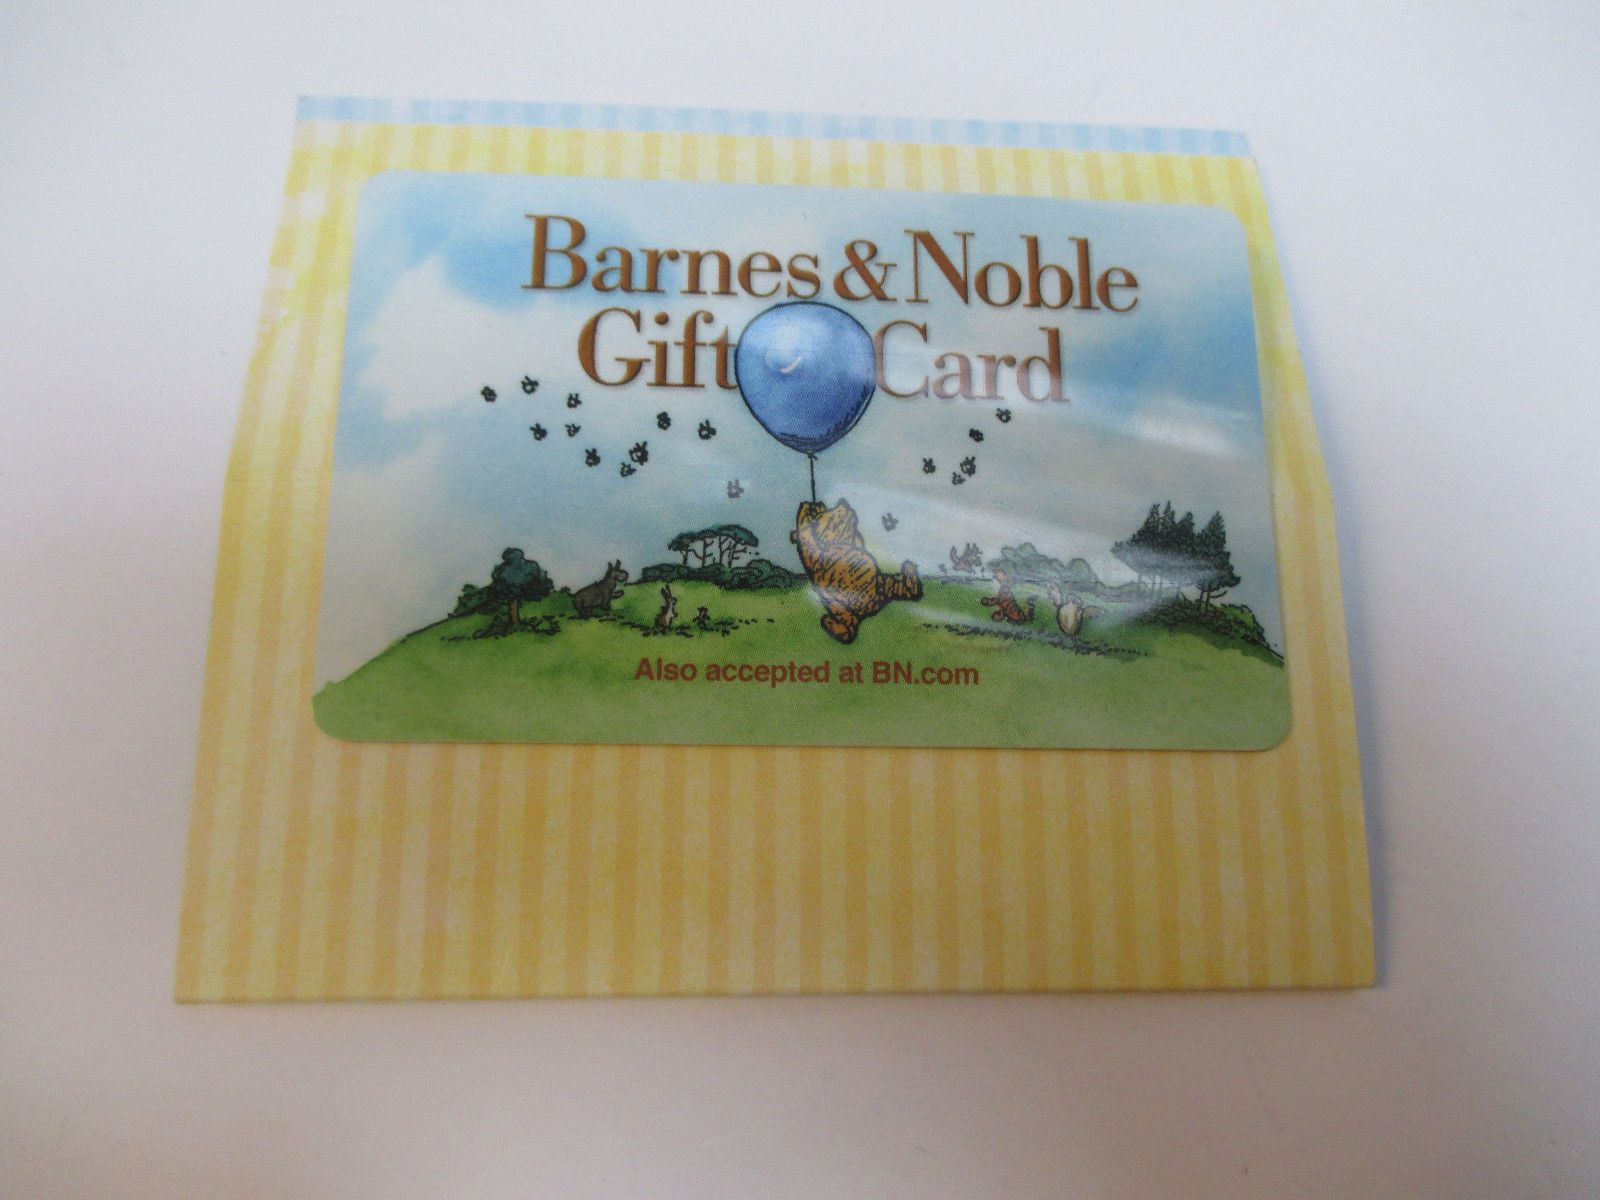 Coupons Giftcards Barnes And Noble Booksellers 10 Gift Card Winnie